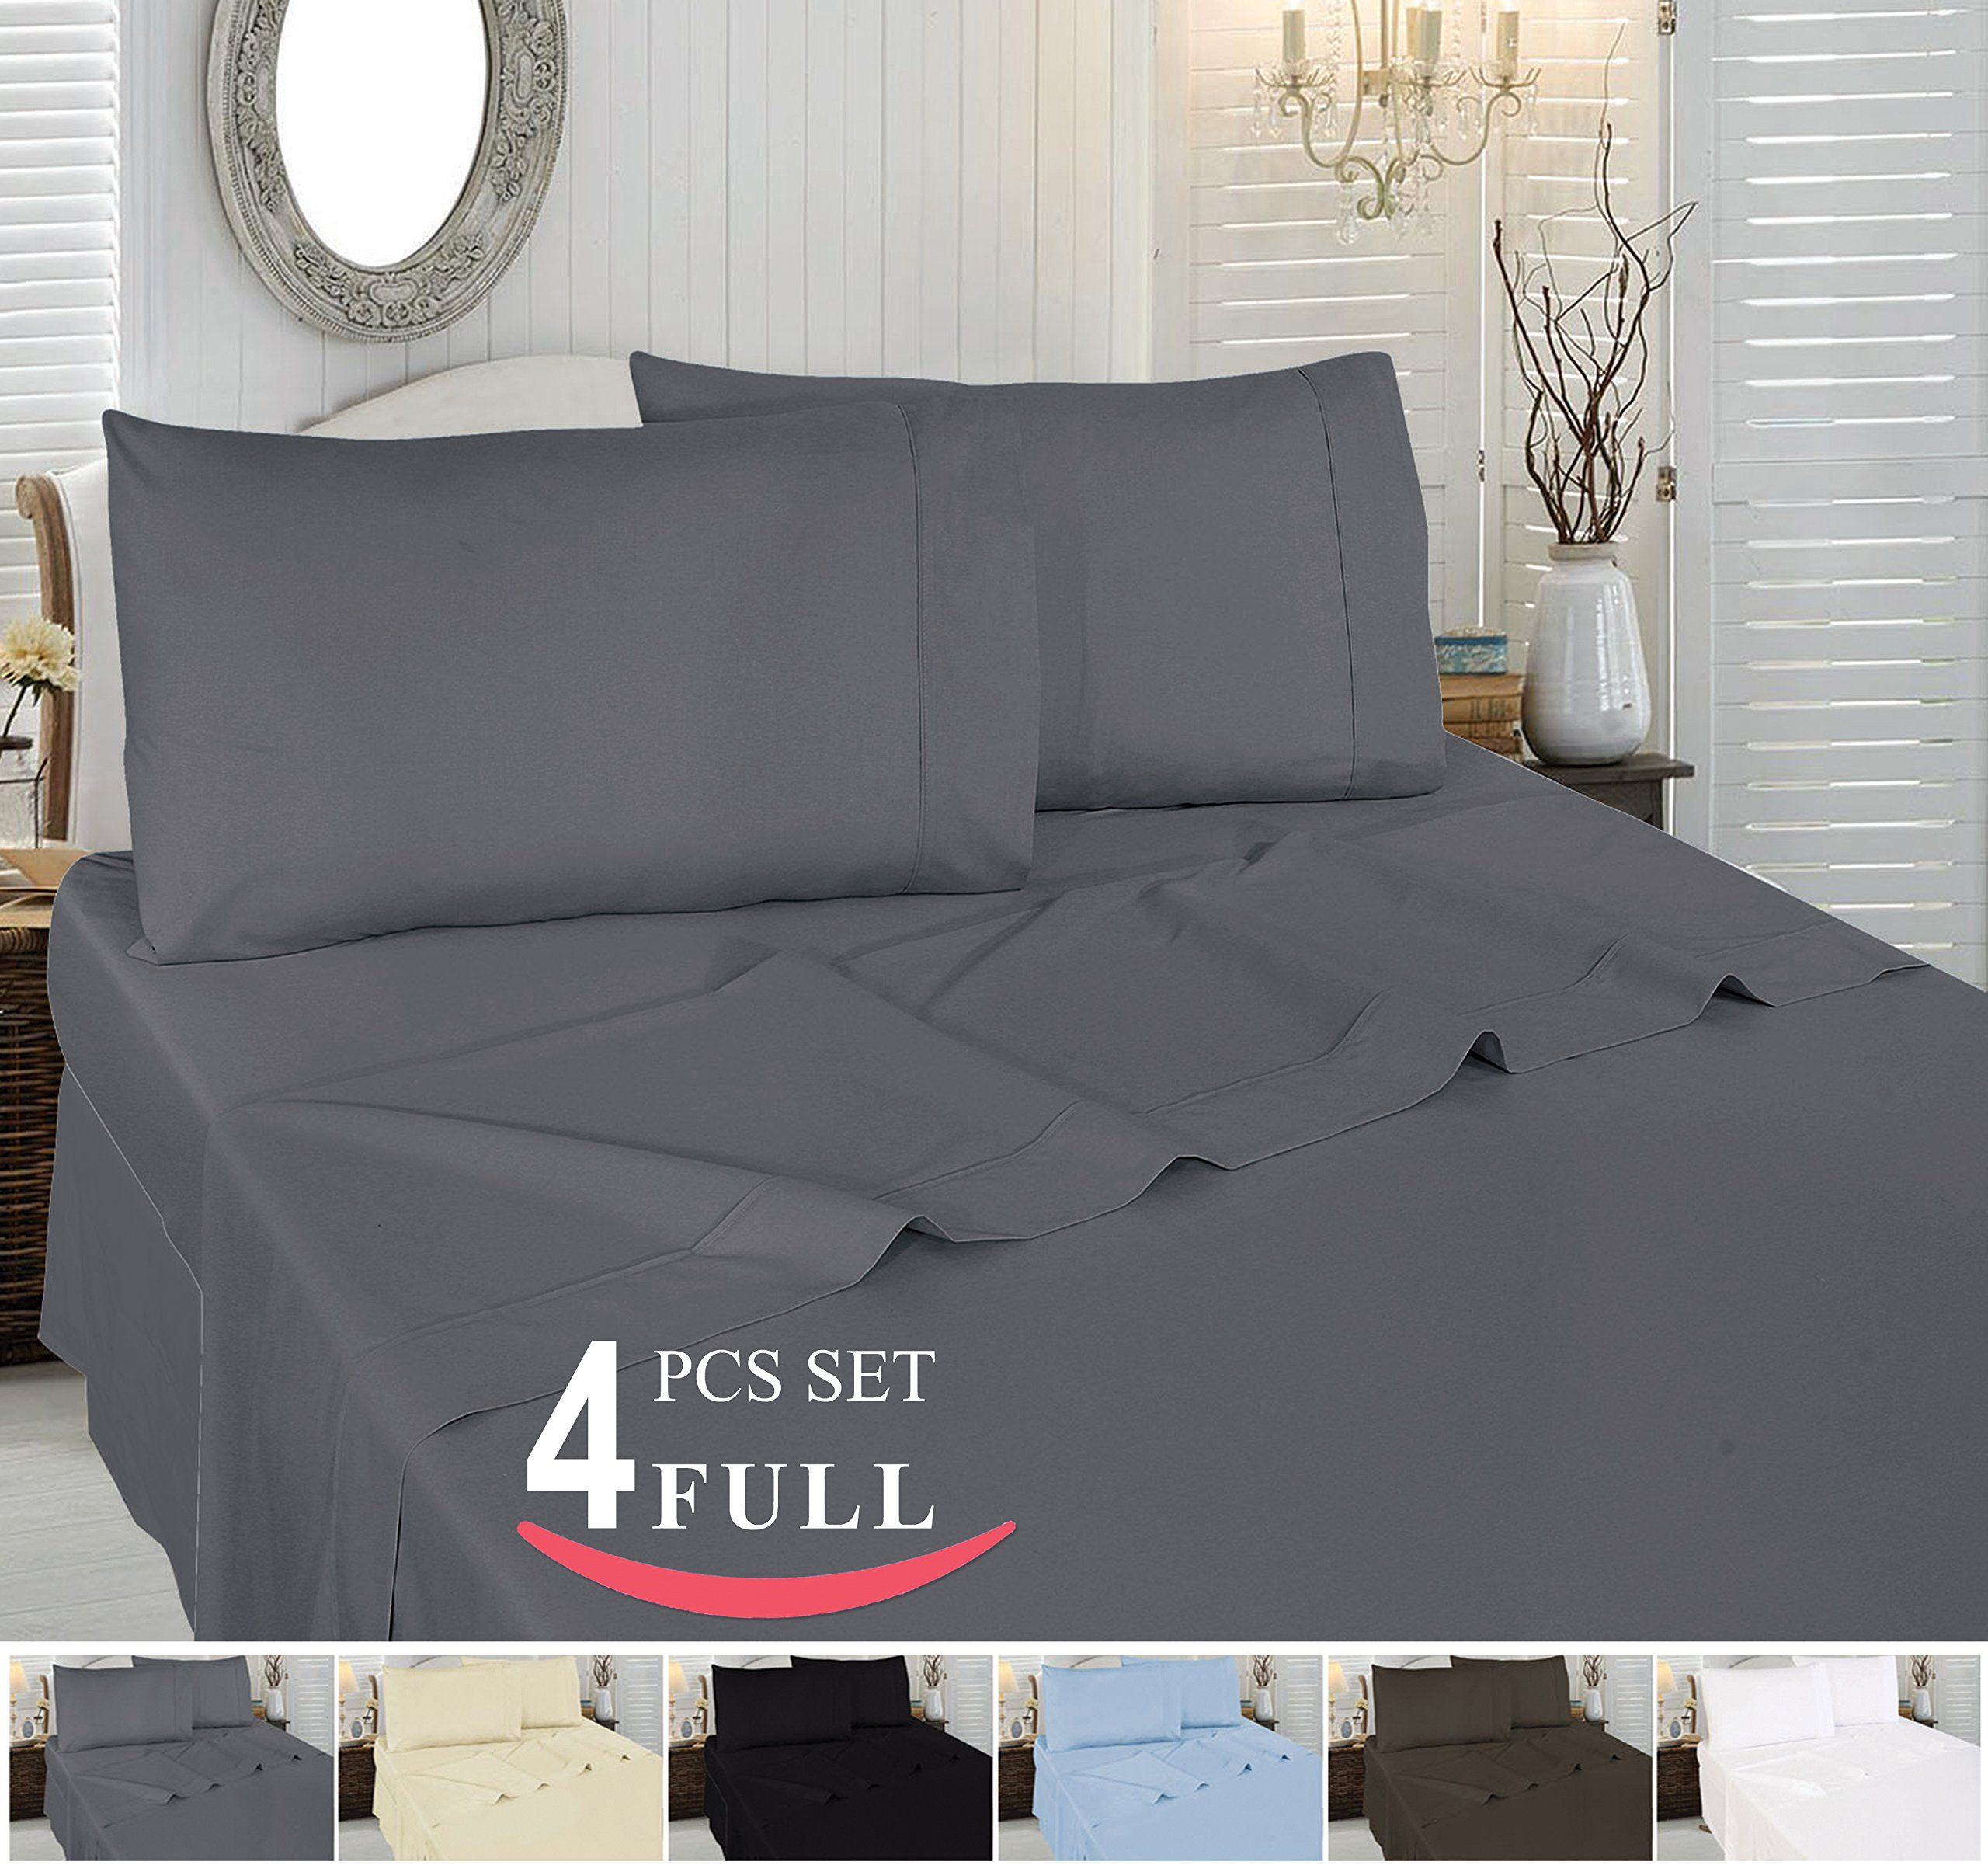 Amazon Com Utopia Bedding 4 Piece Bed Sheet Set 100 Cotton Includes Flat Sheet Fitted Sheet And 2 Pillow Cases Full Bed Sheet Sets Full Bed Sheets Bed